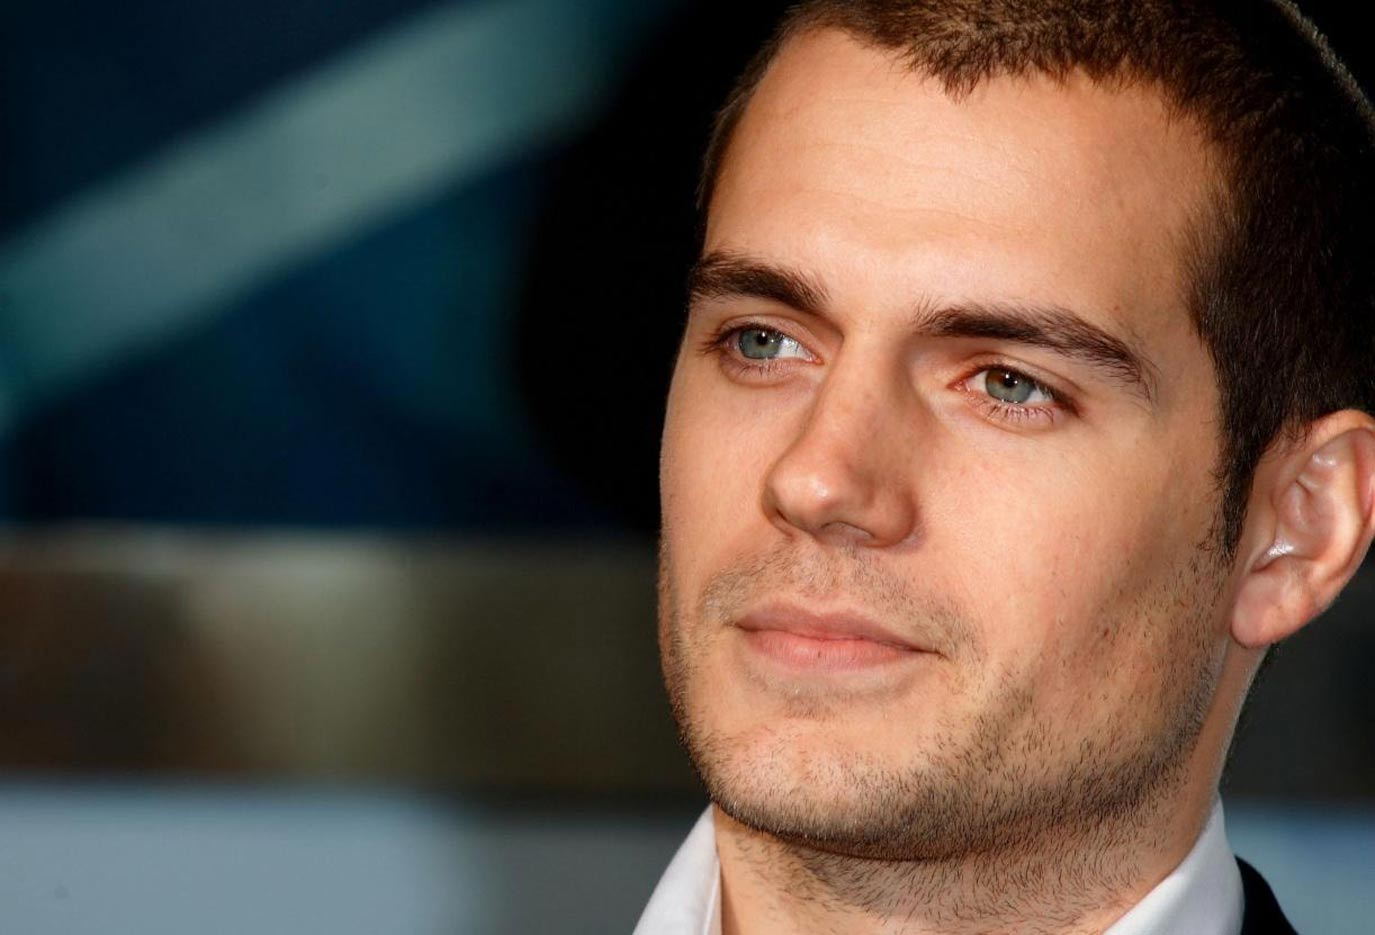 henry-cavill-superman-hairstyle--sexy-hollywood-hot-sexiest-actor-men-movie-star-recent-suit-watch-handsome-best-man-from-uncle